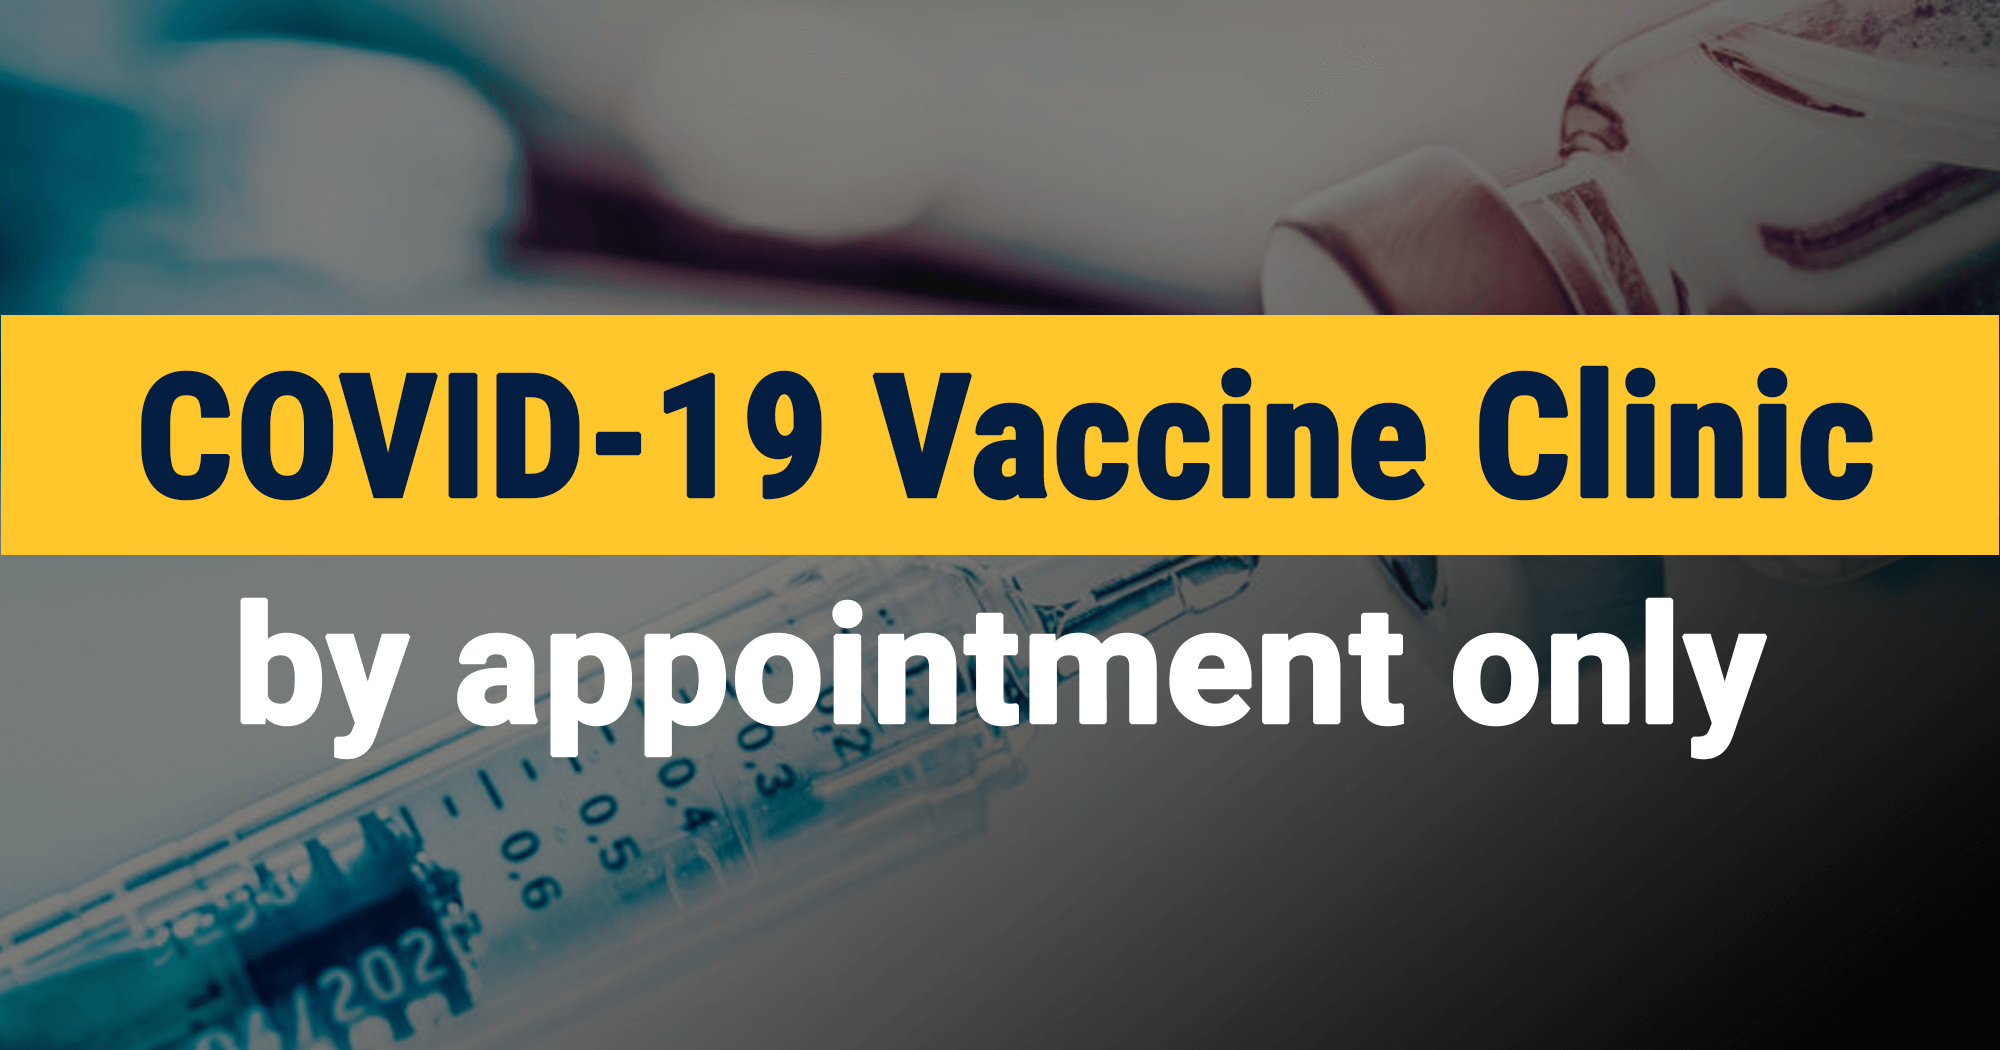 image for COVID-19 Vaccine Clinic: CANCELED